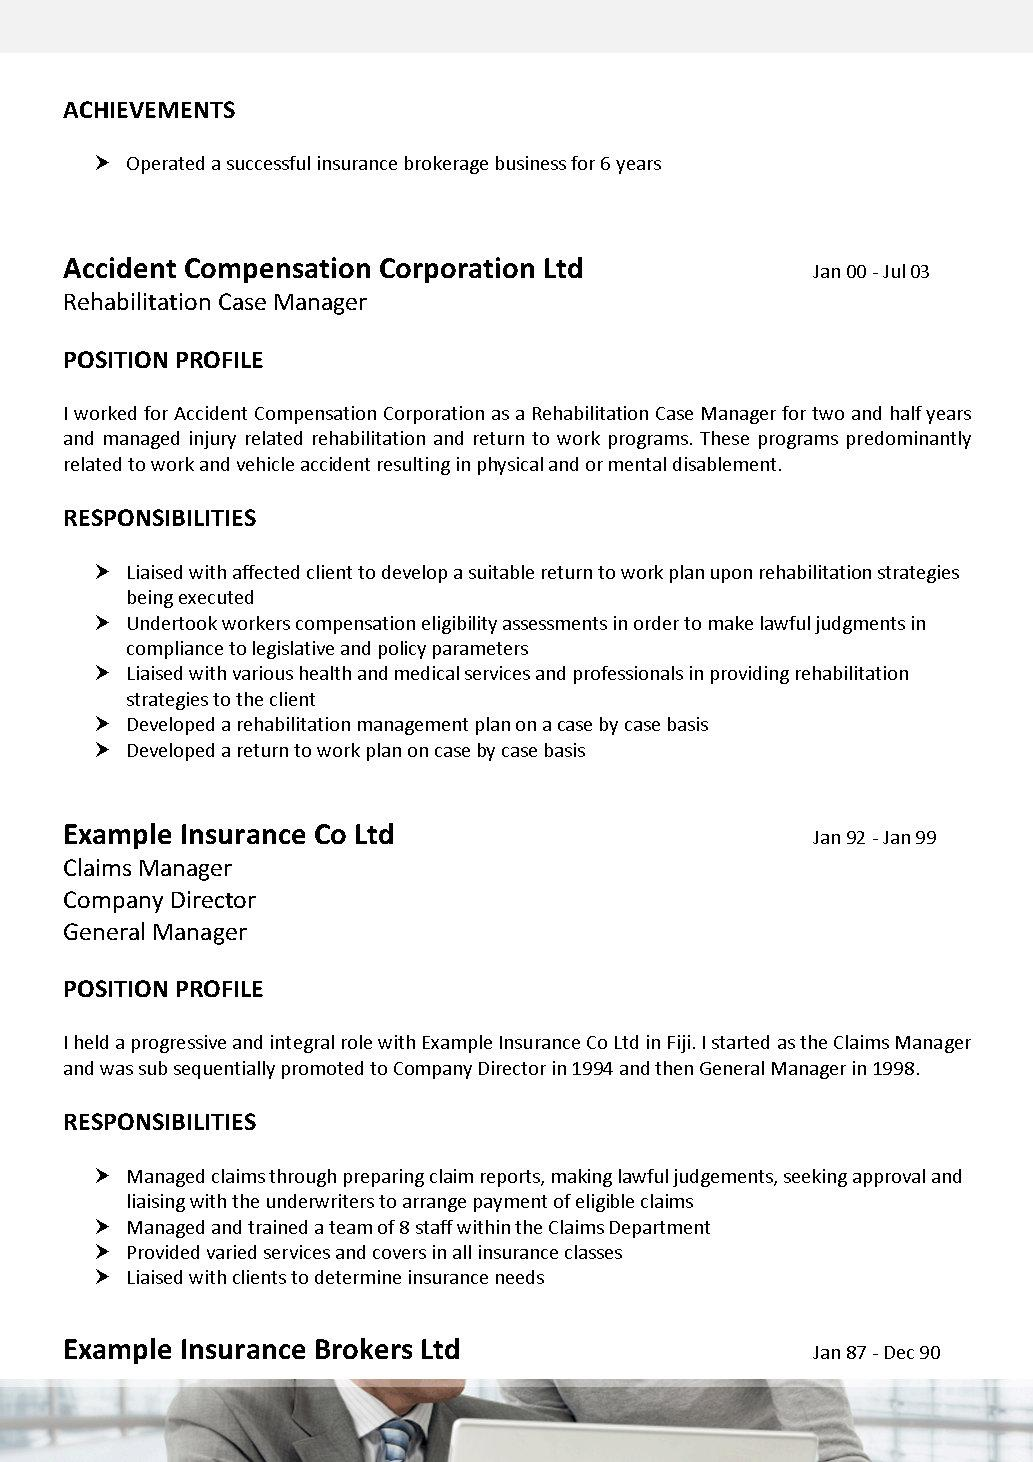 insurance broker resume insurance broker resume template resume templates insurance resume insurance broker resume chekamarue tk